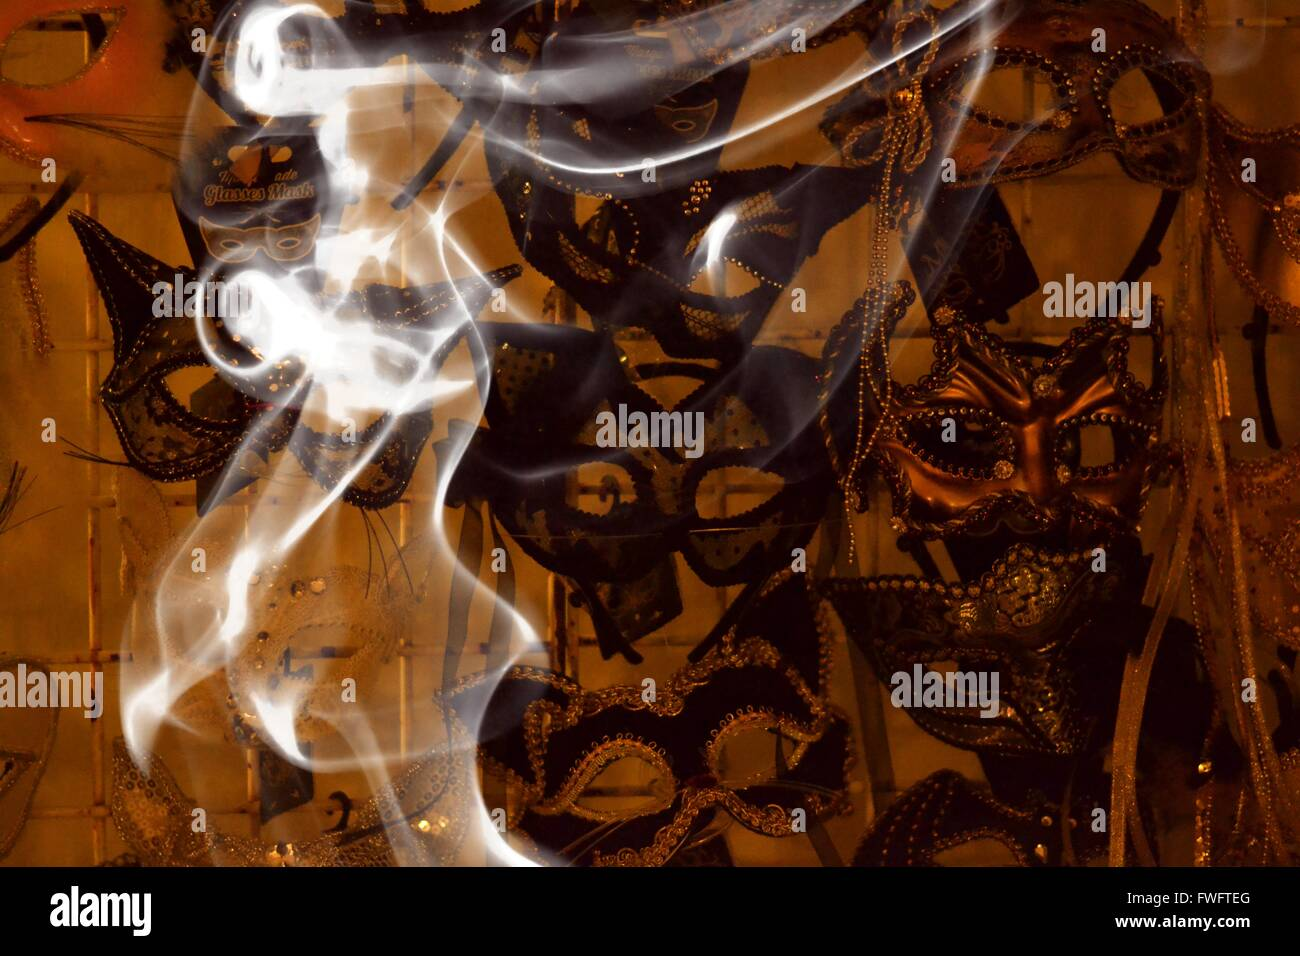 Smoky Mask Display. - Stock Image